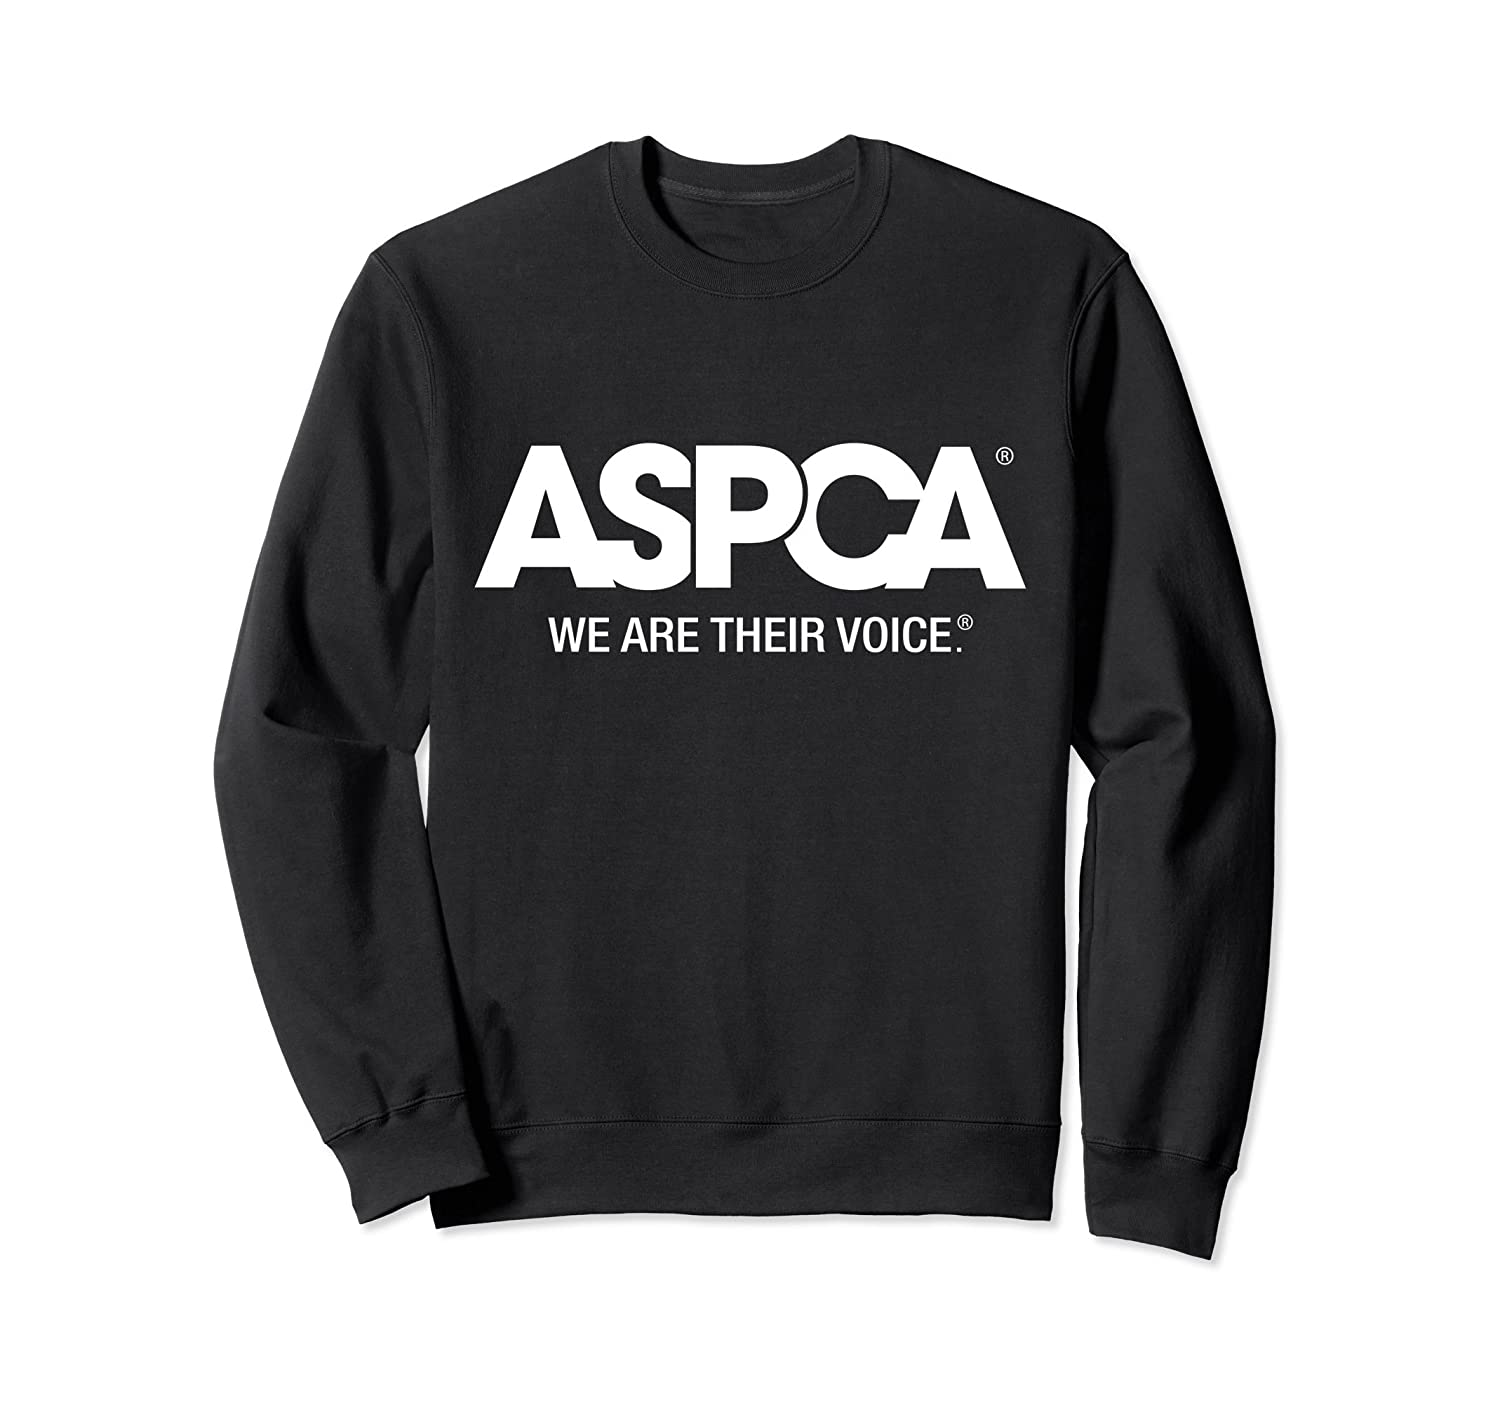 e72a466e43 ASPCA We Are Their Voice Logo Sweatshirt-prm – Paramatee